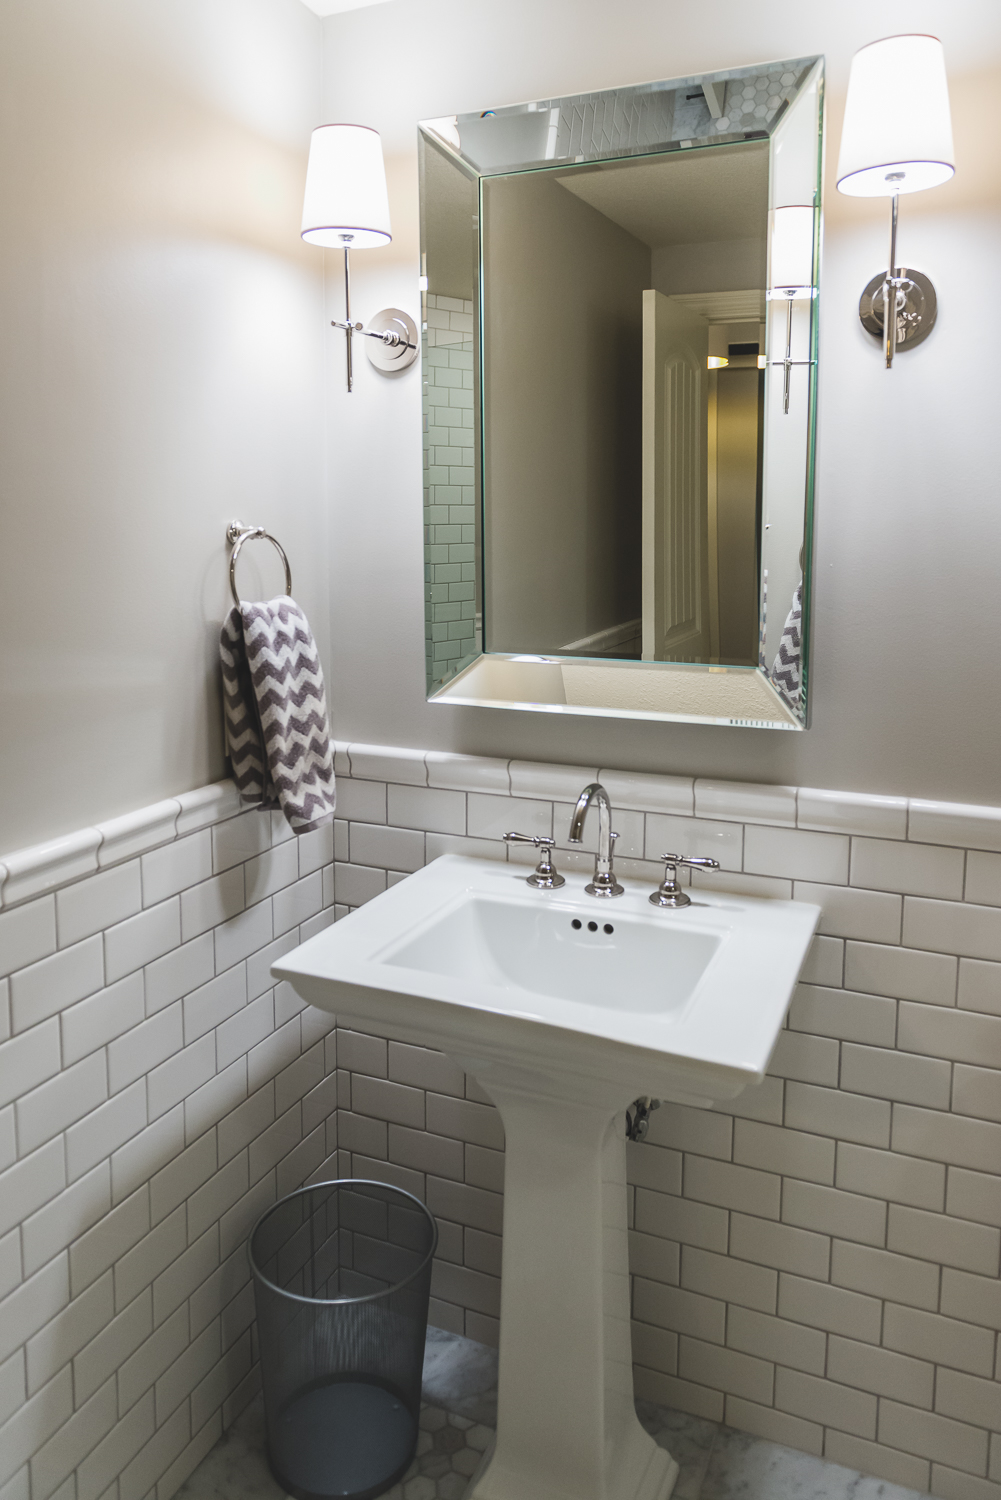 The classic bathroom is a perfect addition for the space. www.saranobledesigns.com